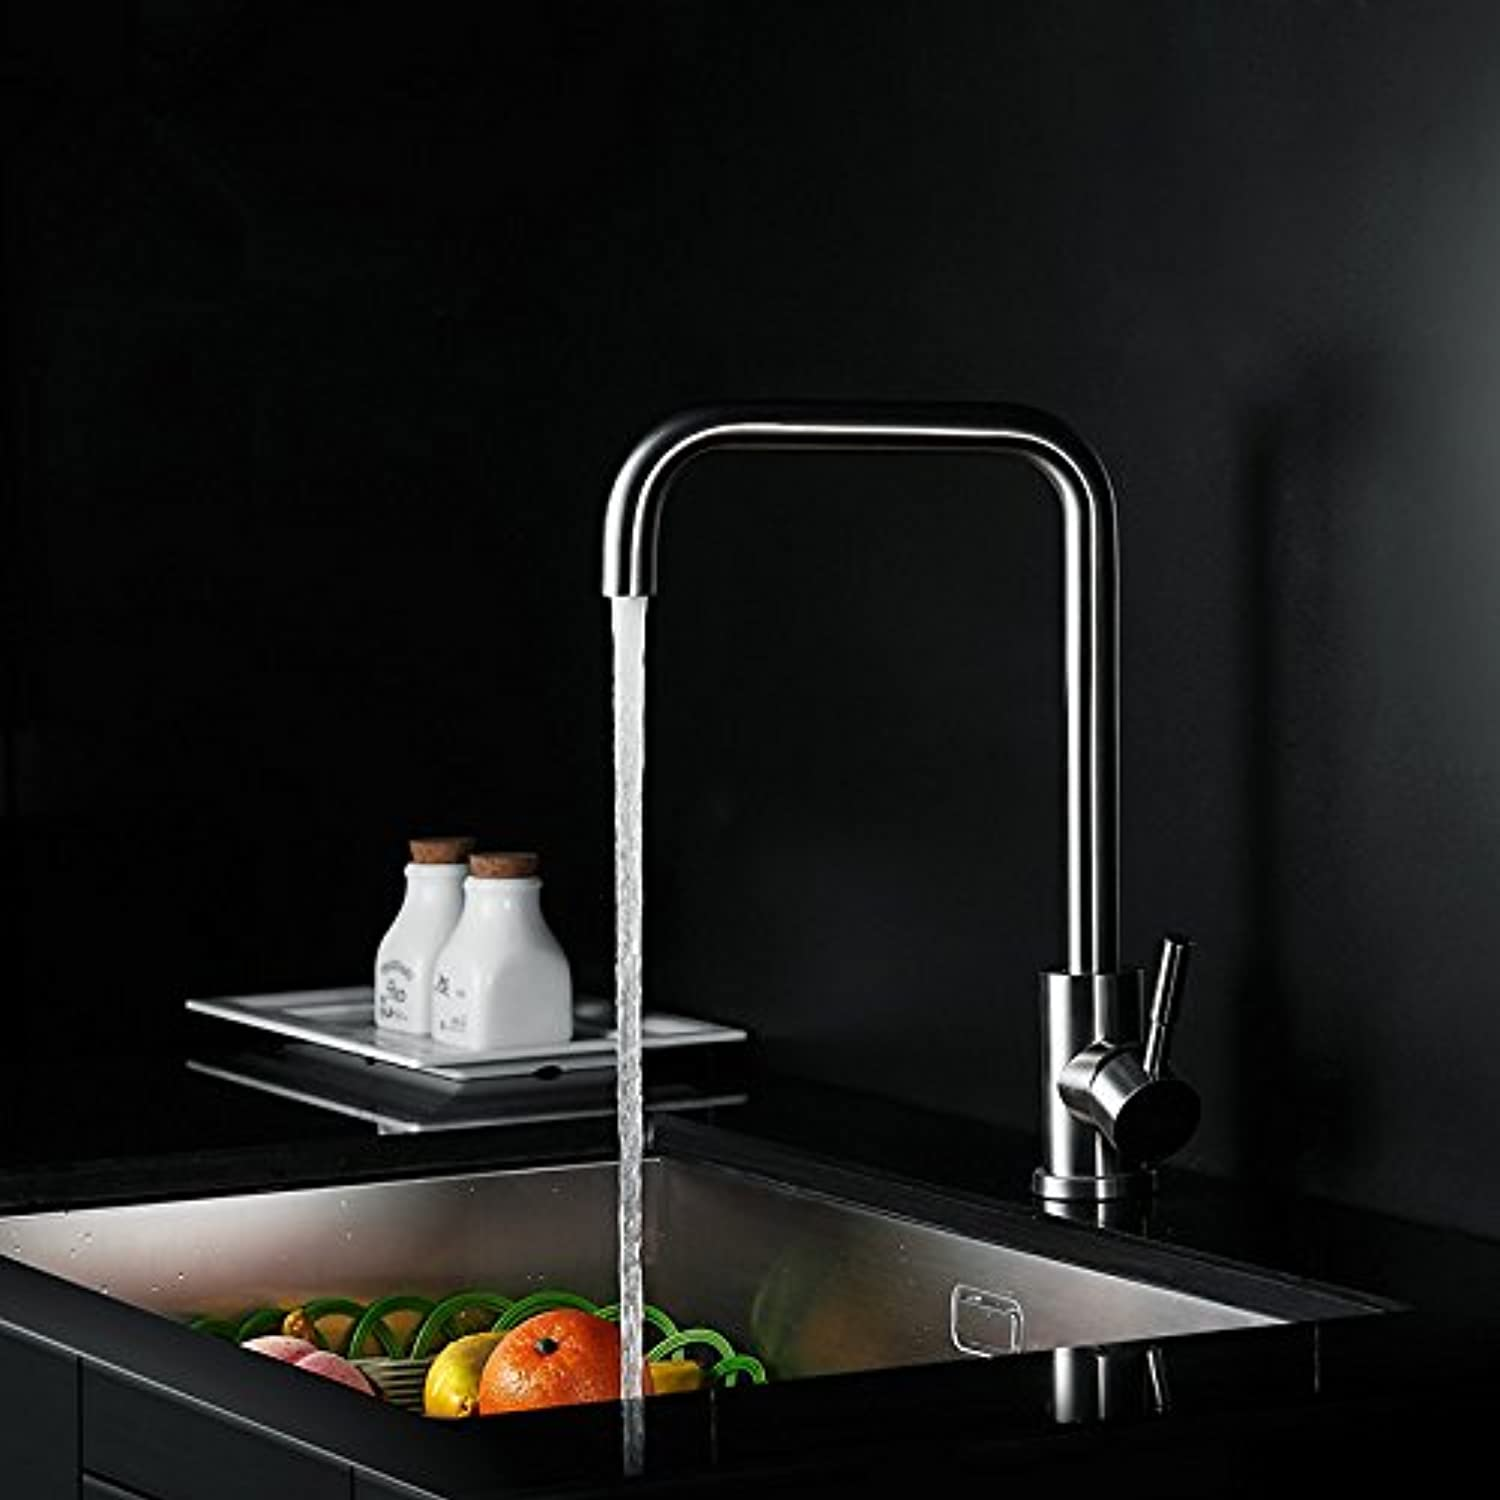 LFwbyhd Ld Kitchen faucet wash basin hot and cold water faucet 304 stainless steel lead-free environmental predection water tank drawing redatable water tap,B